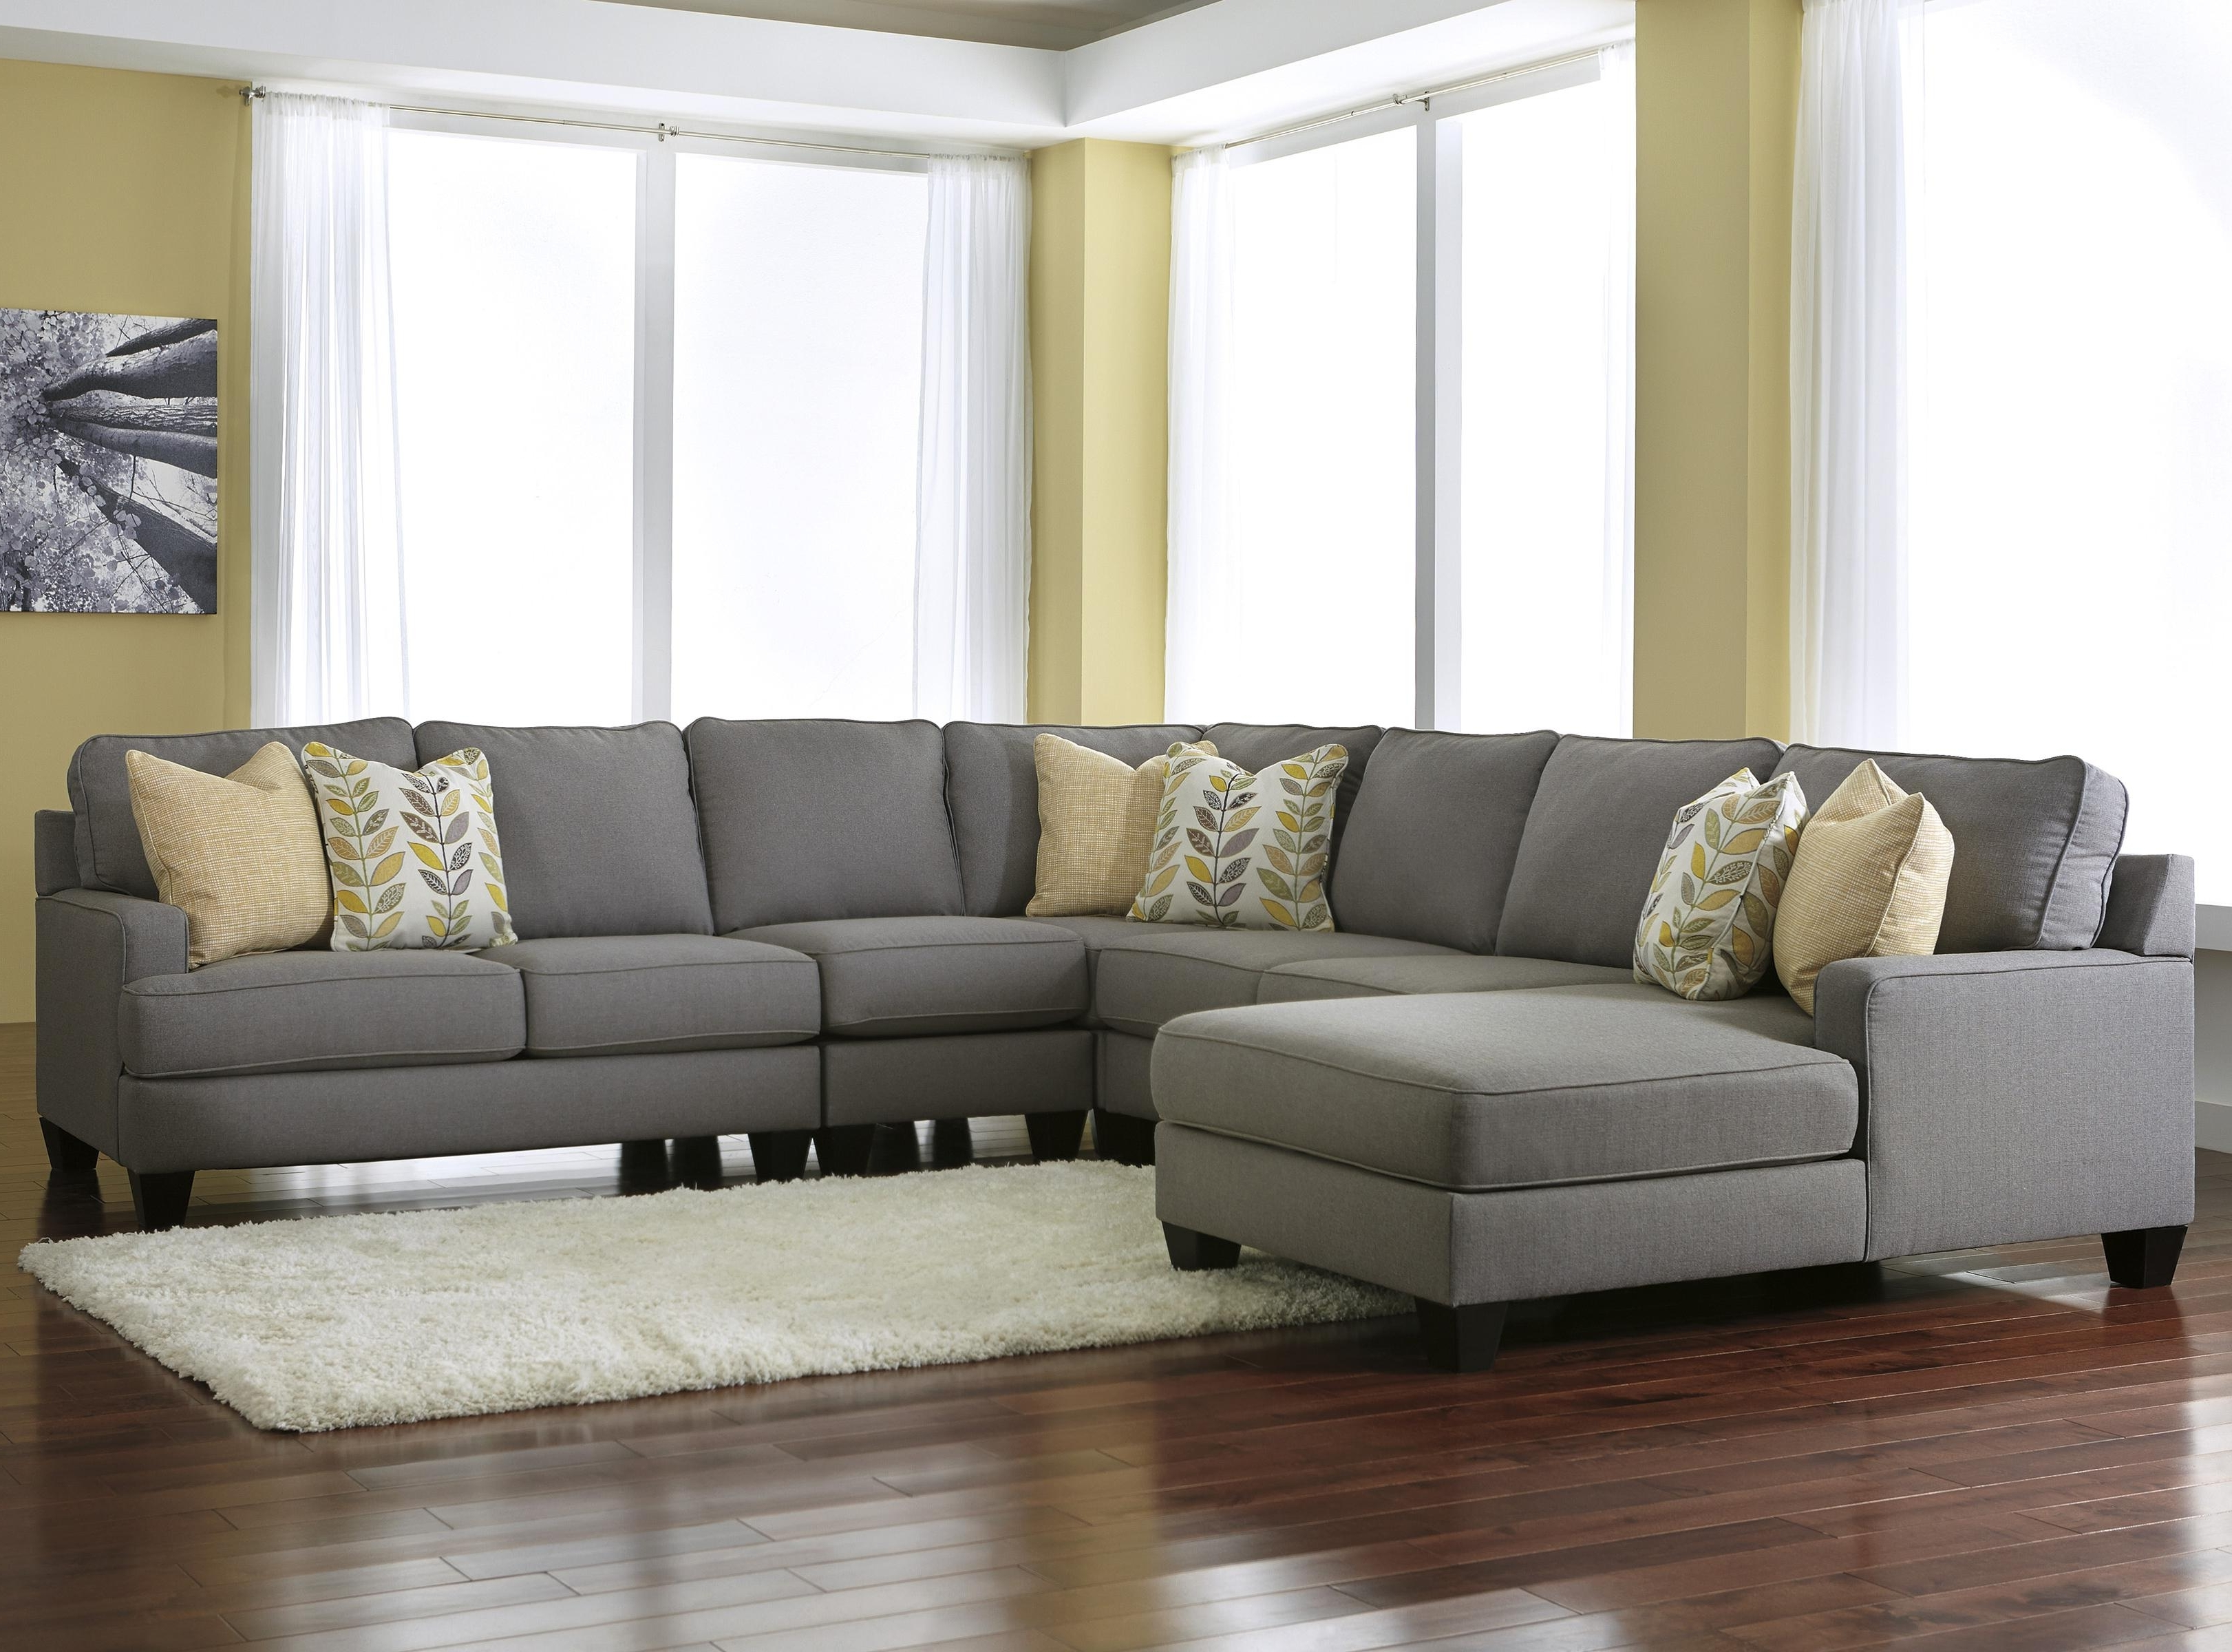 2017 Signature Designashley Chamberly – Alloy Modern 5 Piece In Home Furniture Sectional Sofas (View 12 of 15)